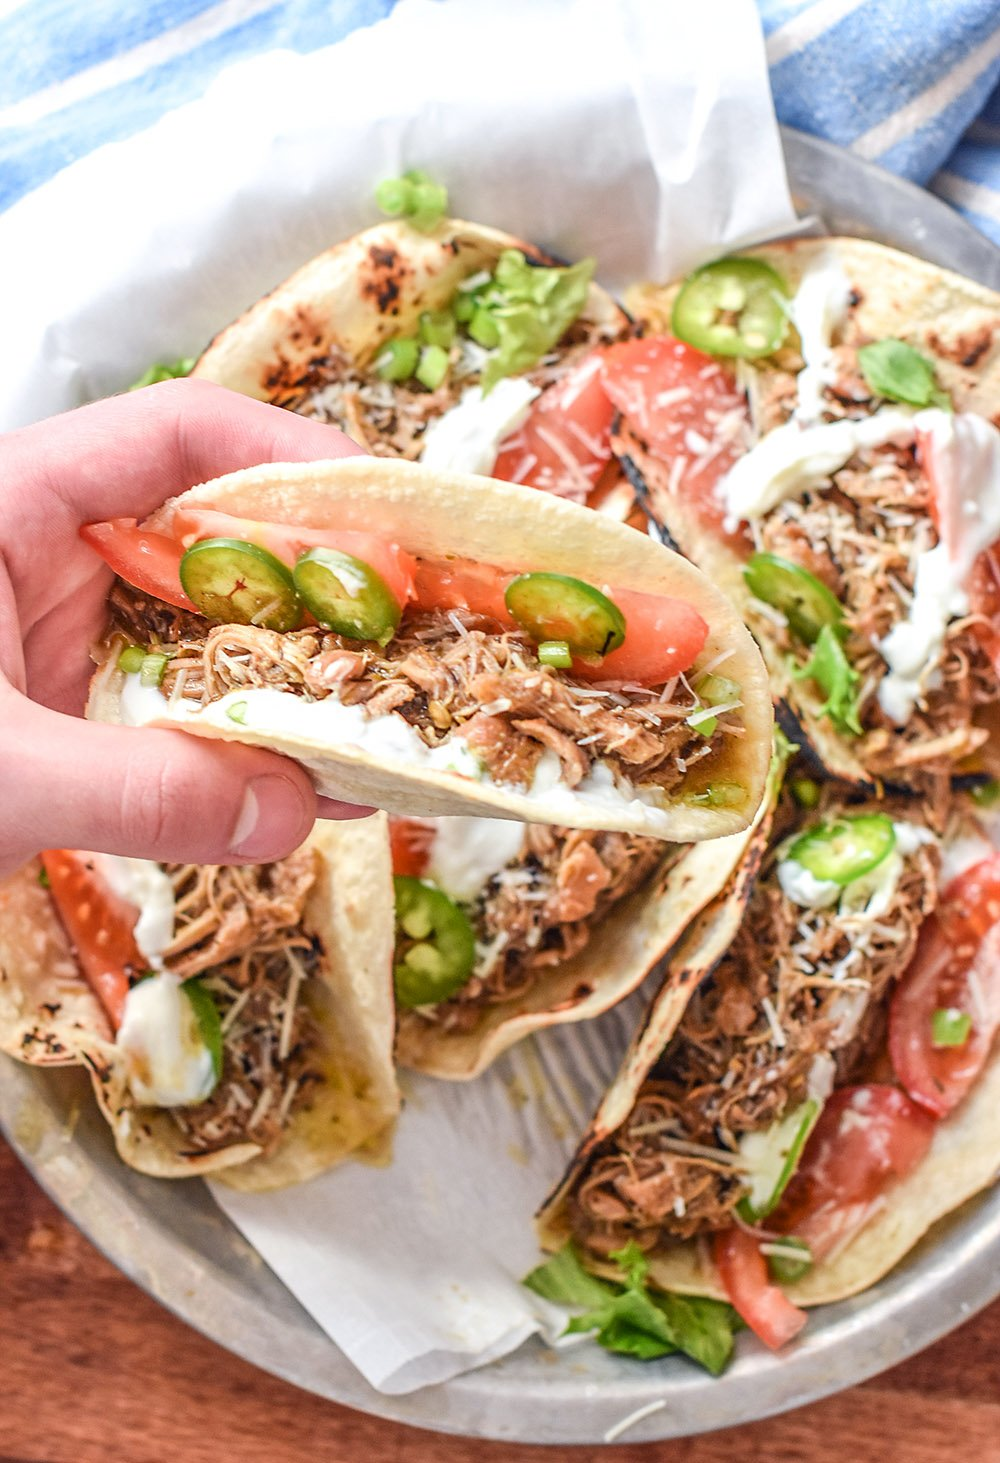 a taco with shredded jerk chicken